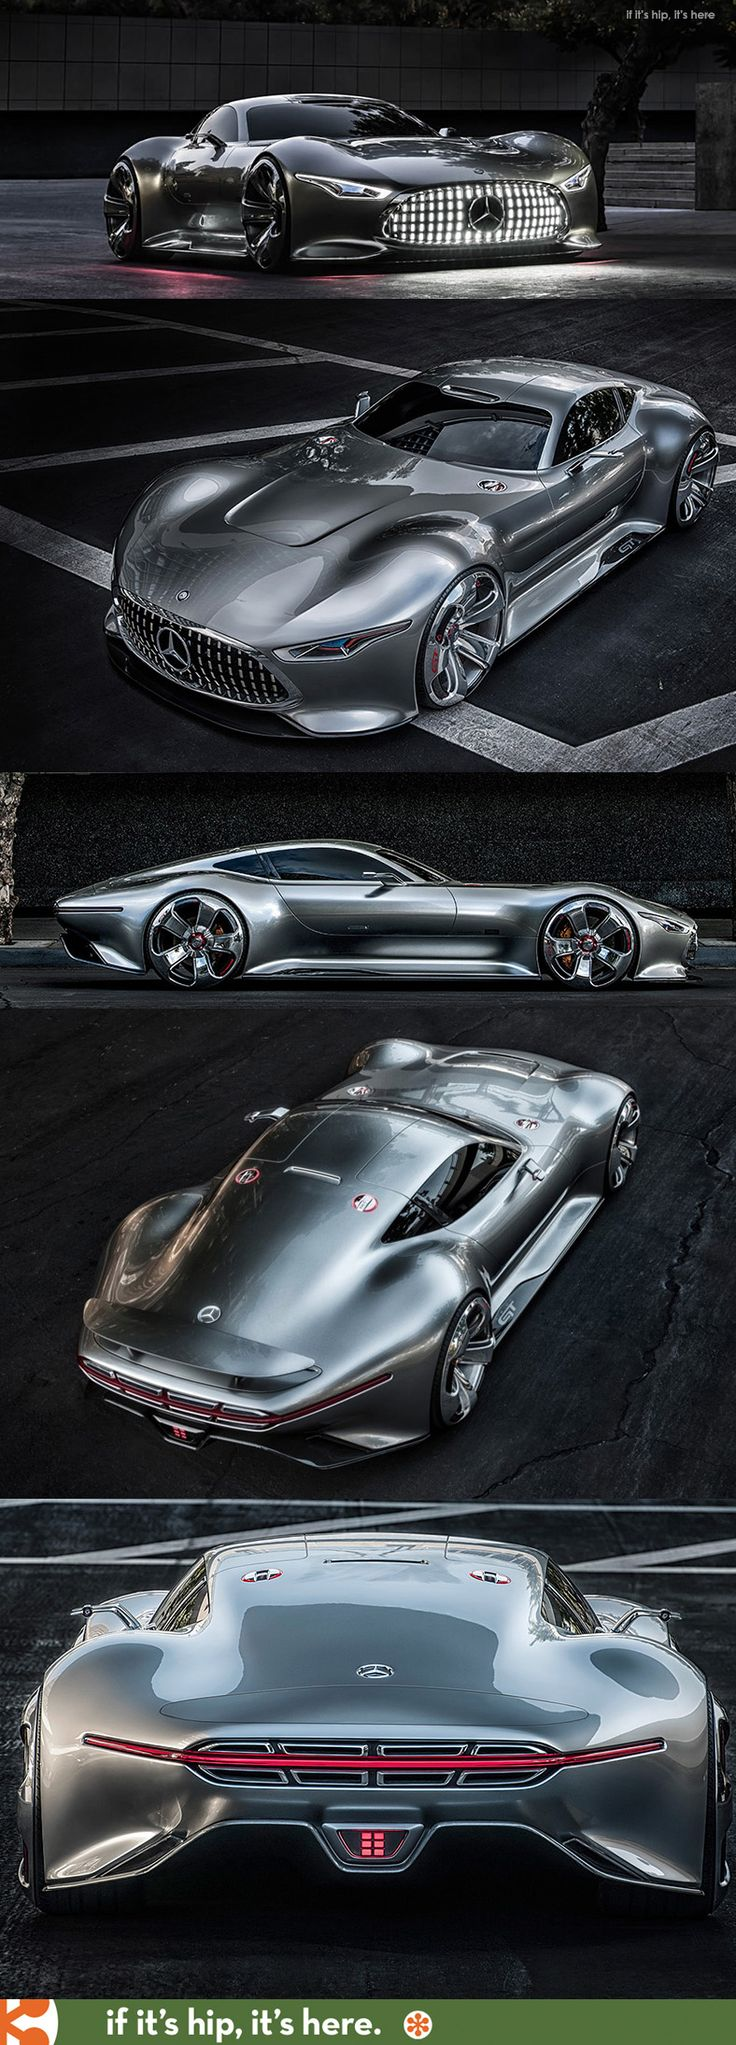 Mercedes Benz Designs A Wicked Car Inspired By A Video Racing Game: The AMG  Vision Gran Turismo. This Might Be My New Favourite Car!